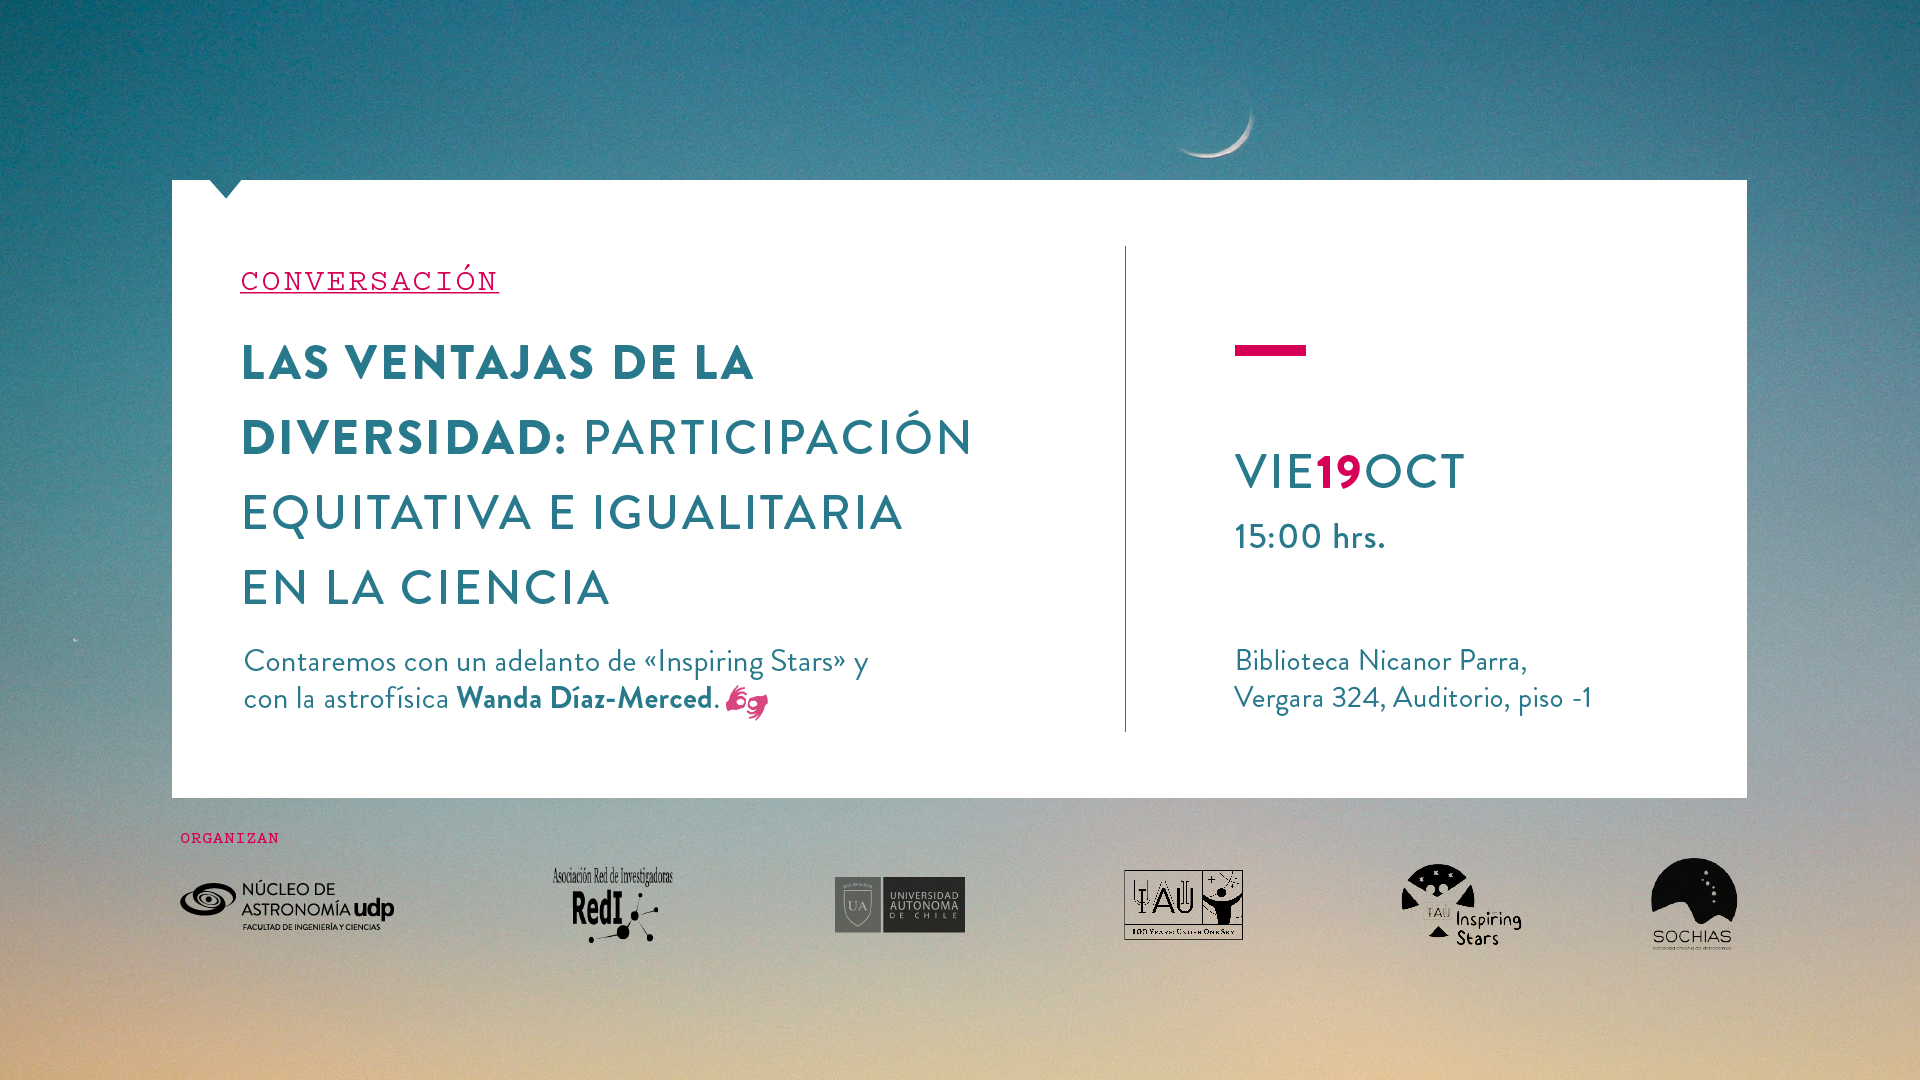 Science for all: Núcleo de Astronomía UDP invites to talk about inclusion in scientific research